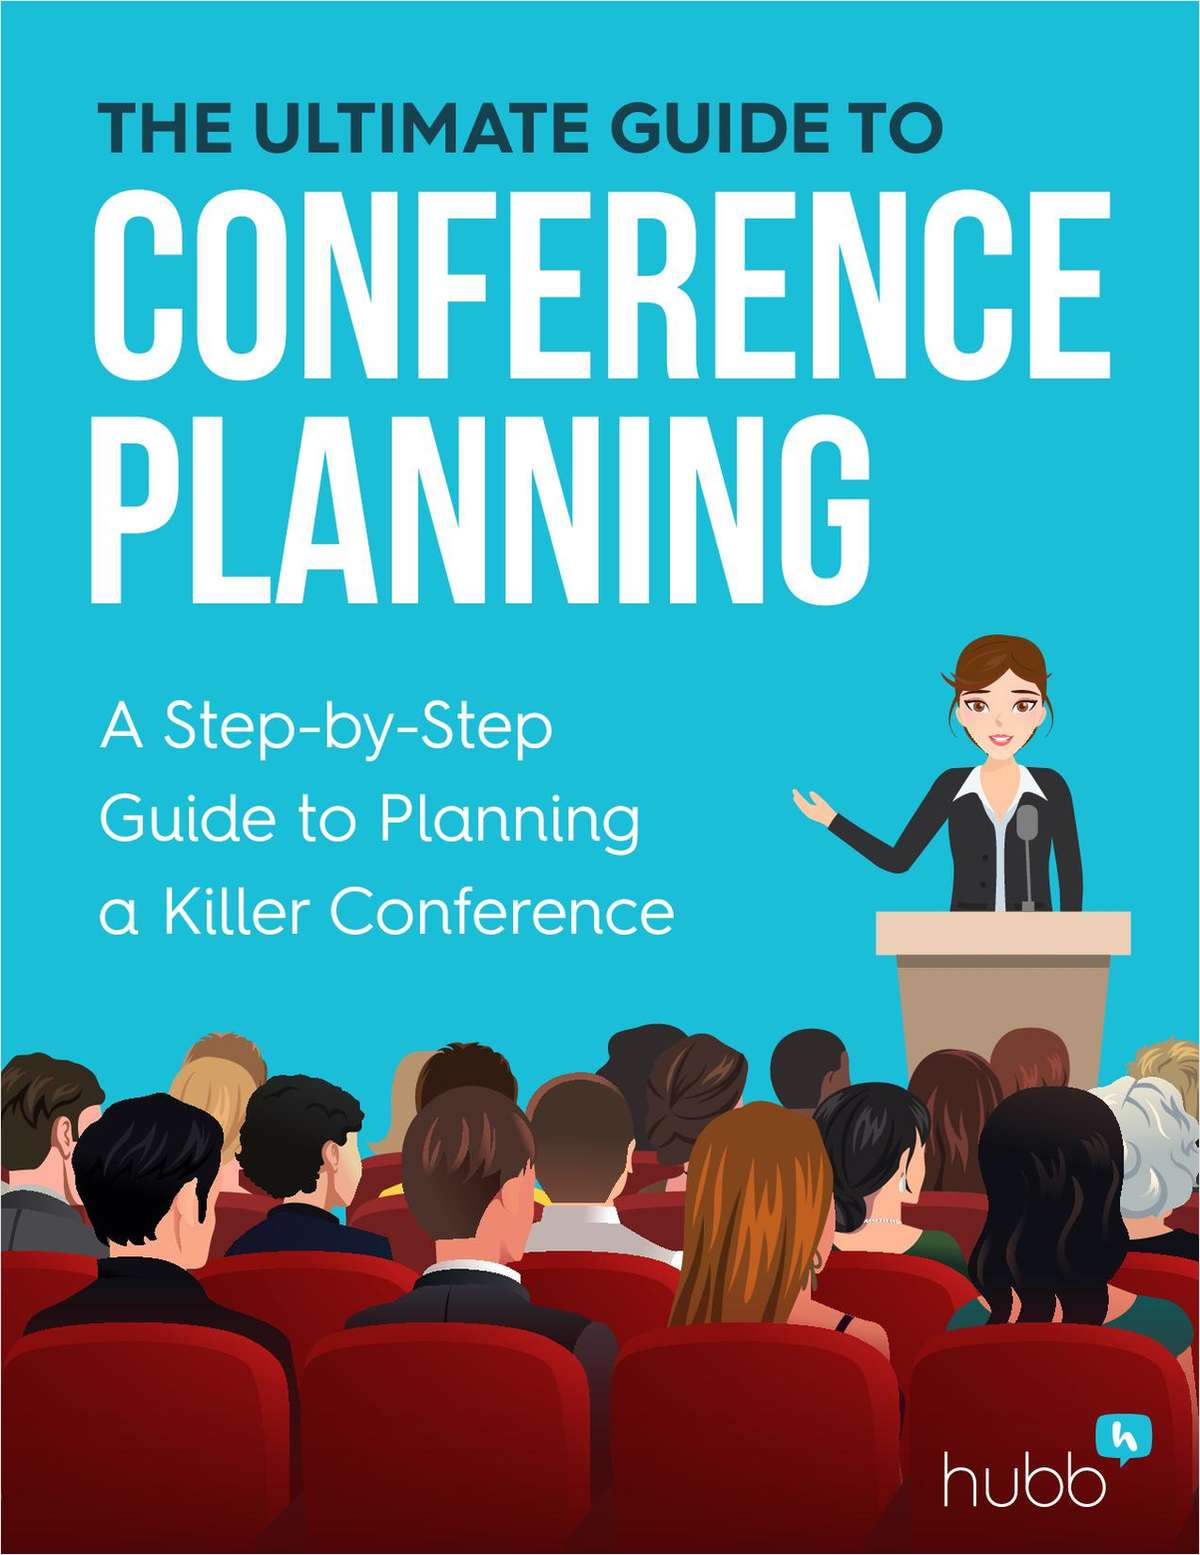 The Ultimate Guide to Conference Planning